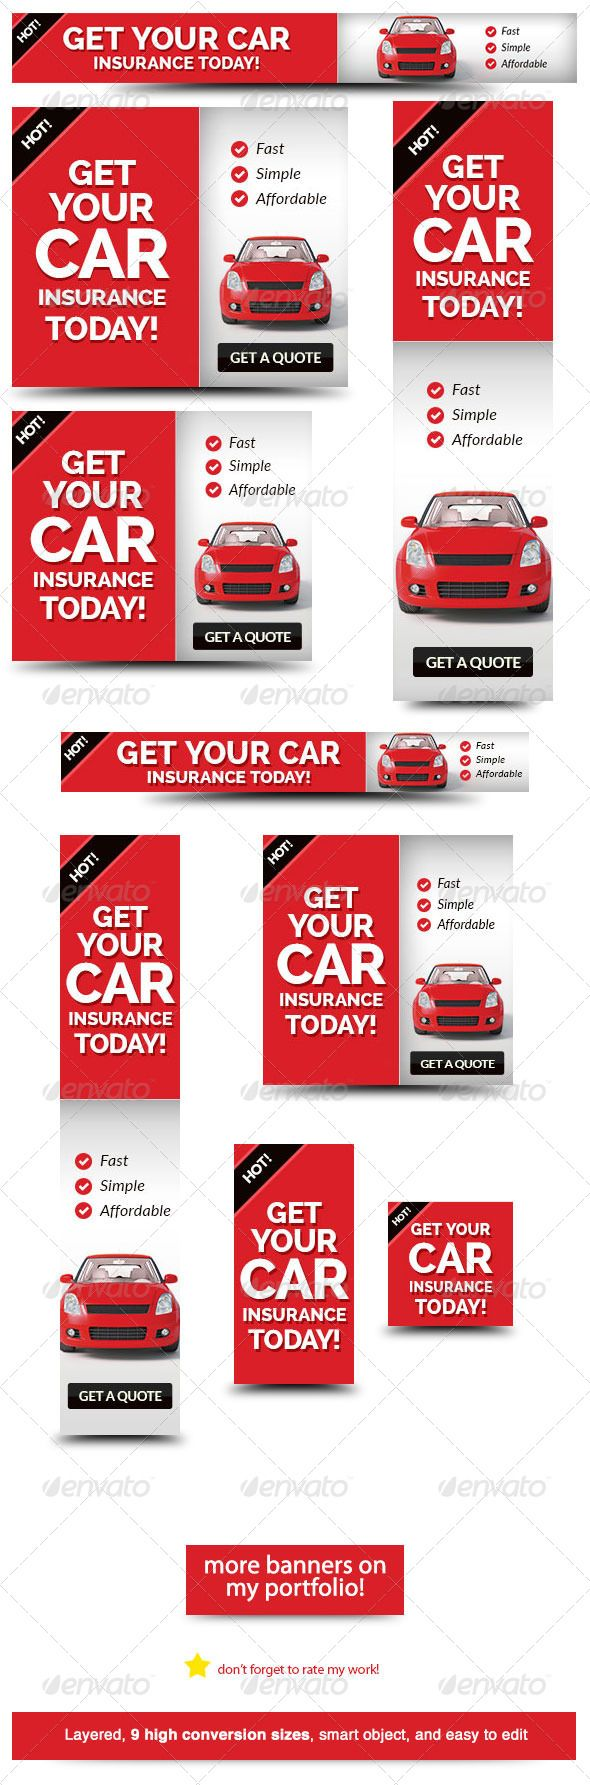 Cheap Car Insurance Web Banner Ad Web Banner Design Banner